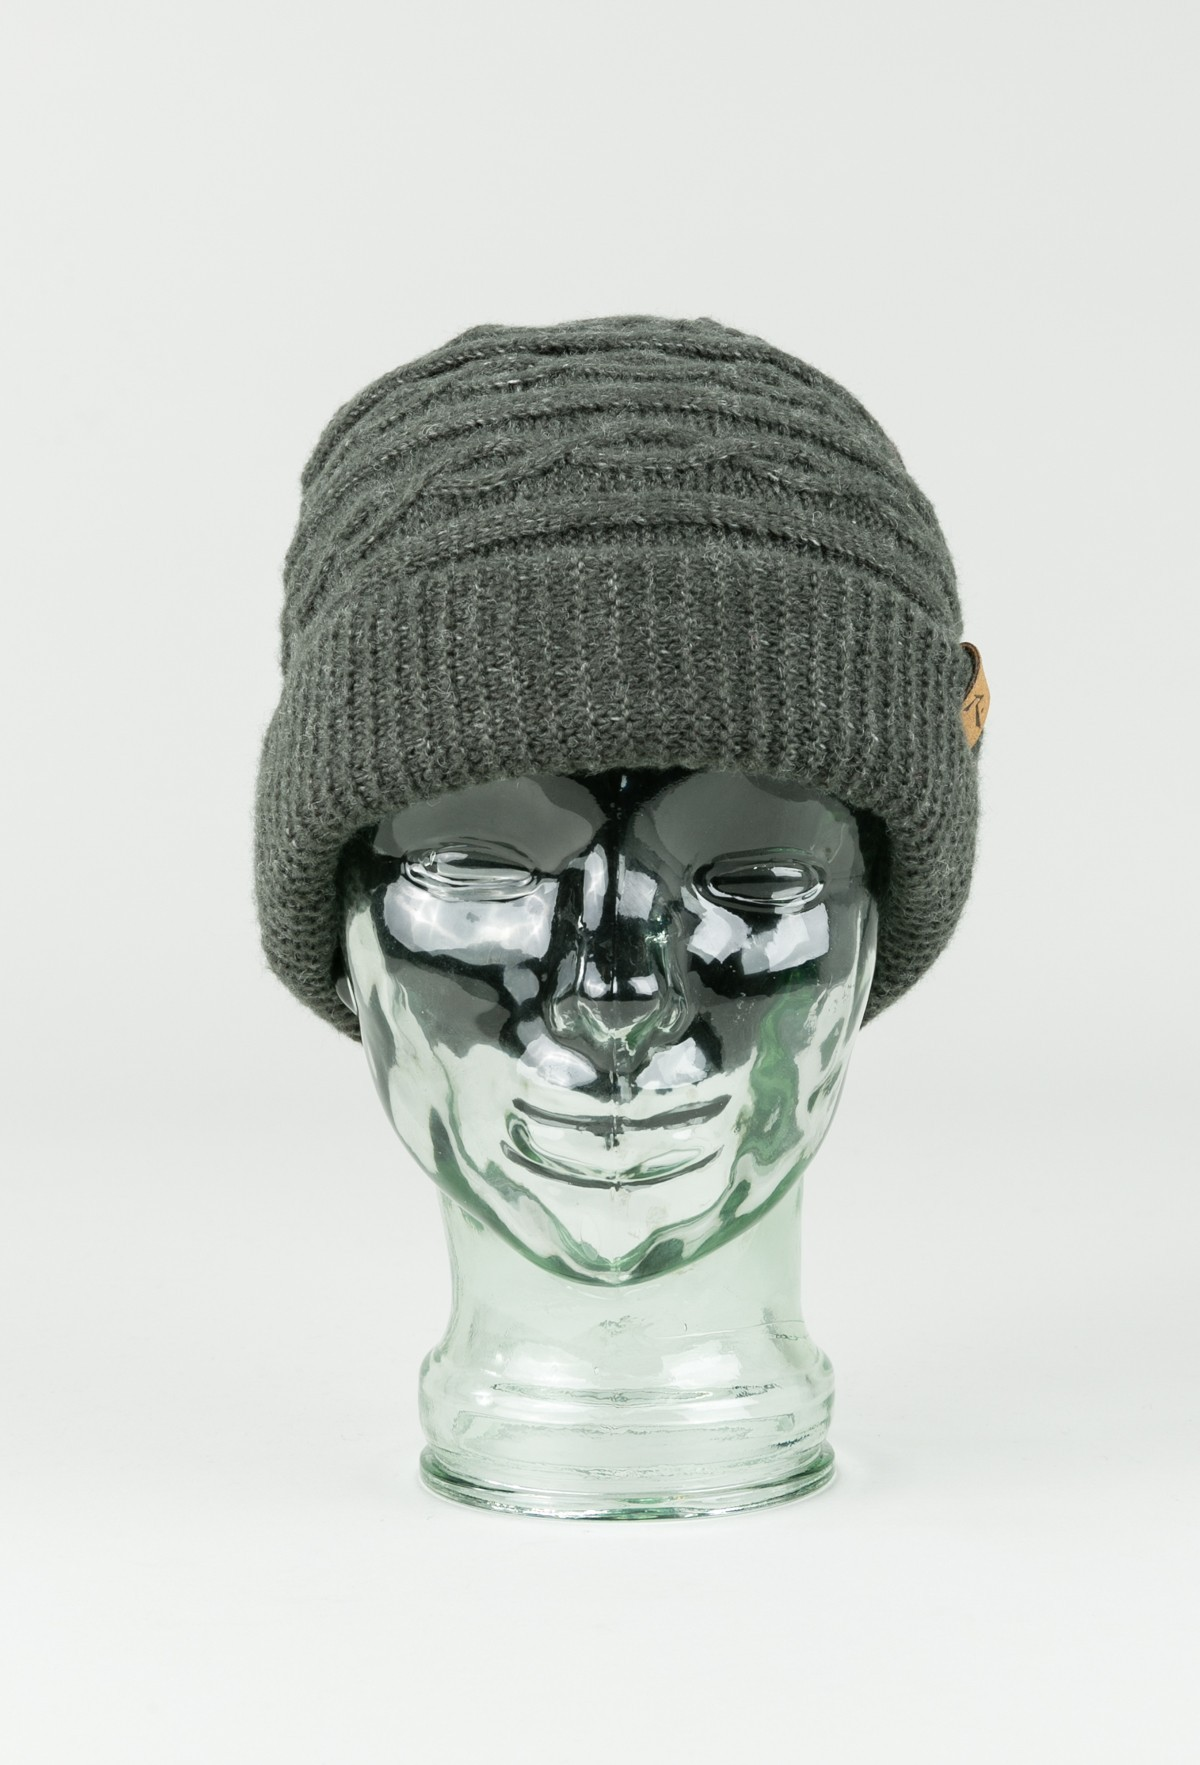 PASSAGE BEANIE - Accessories-Headwear   Urban Streetwear Fashion ... aad24796220